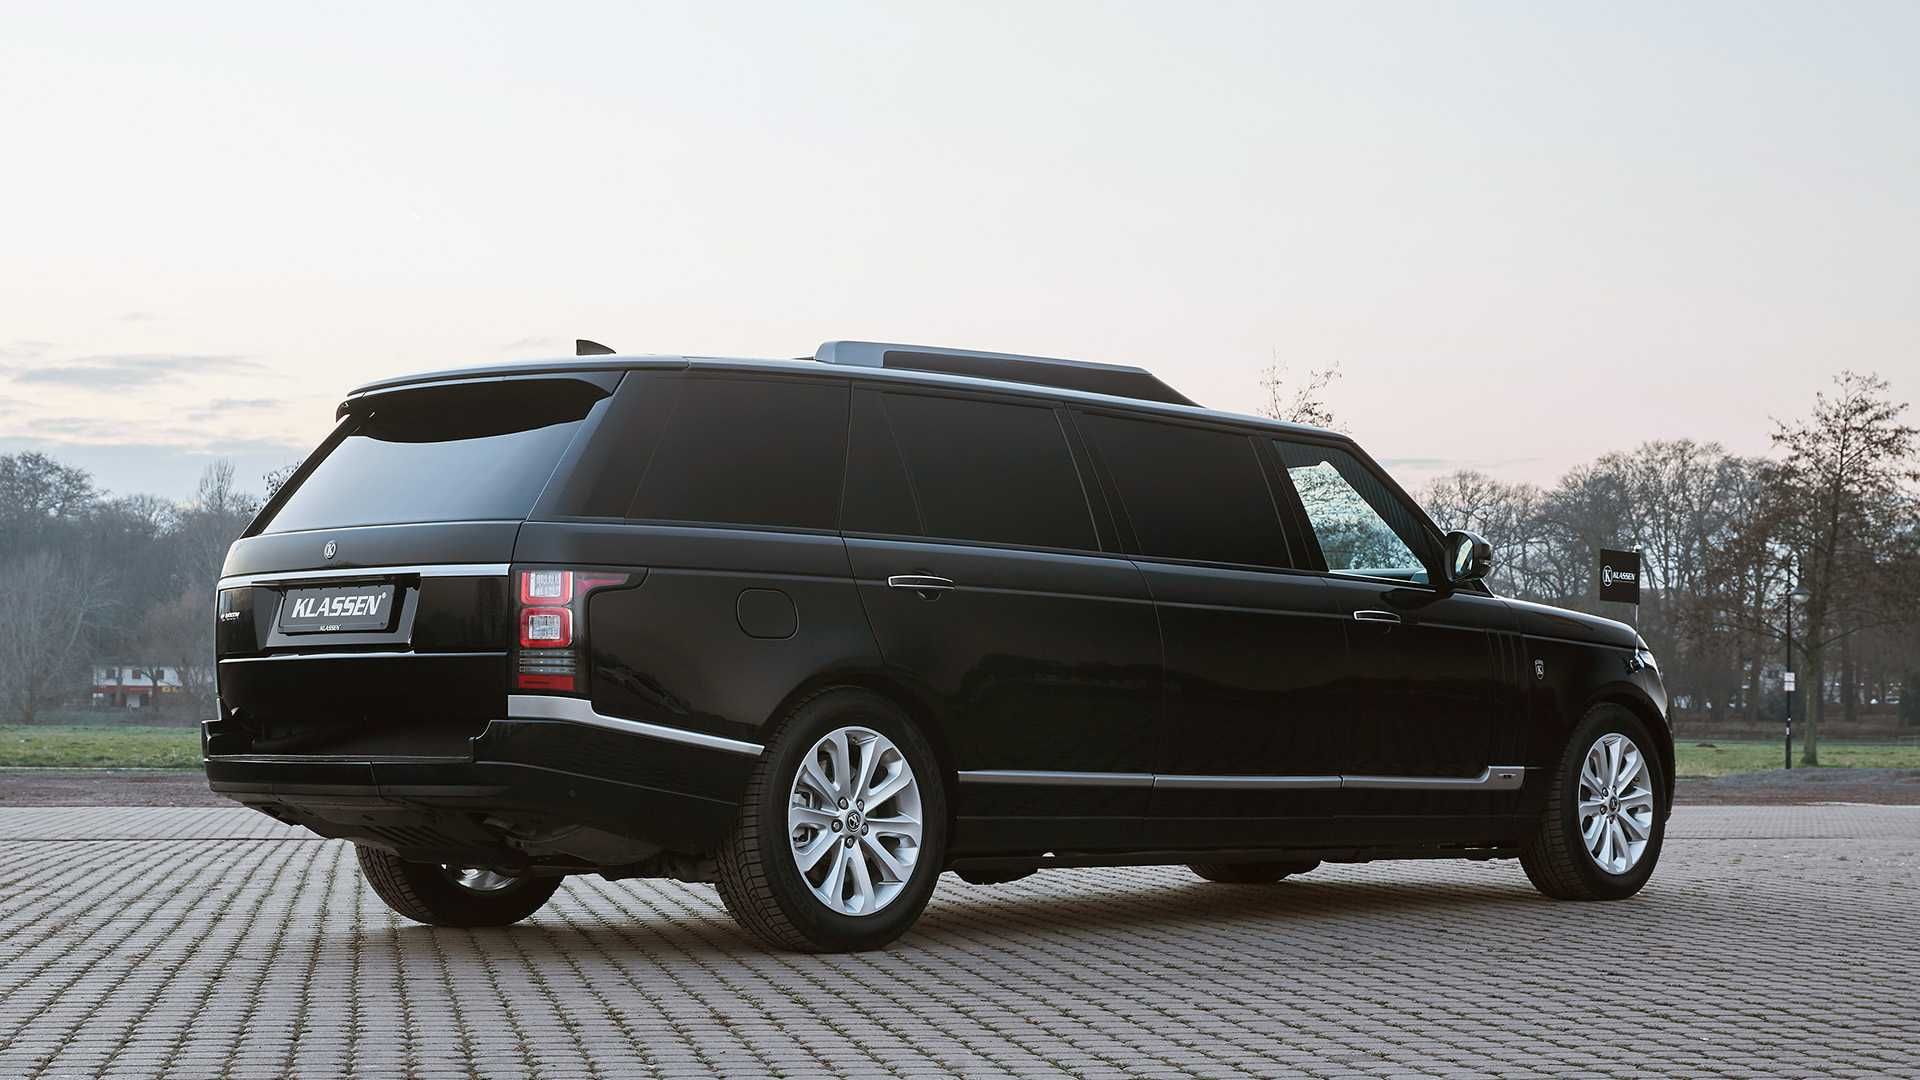 klassen-stretched-land-rover-range-rover-autobiography-3